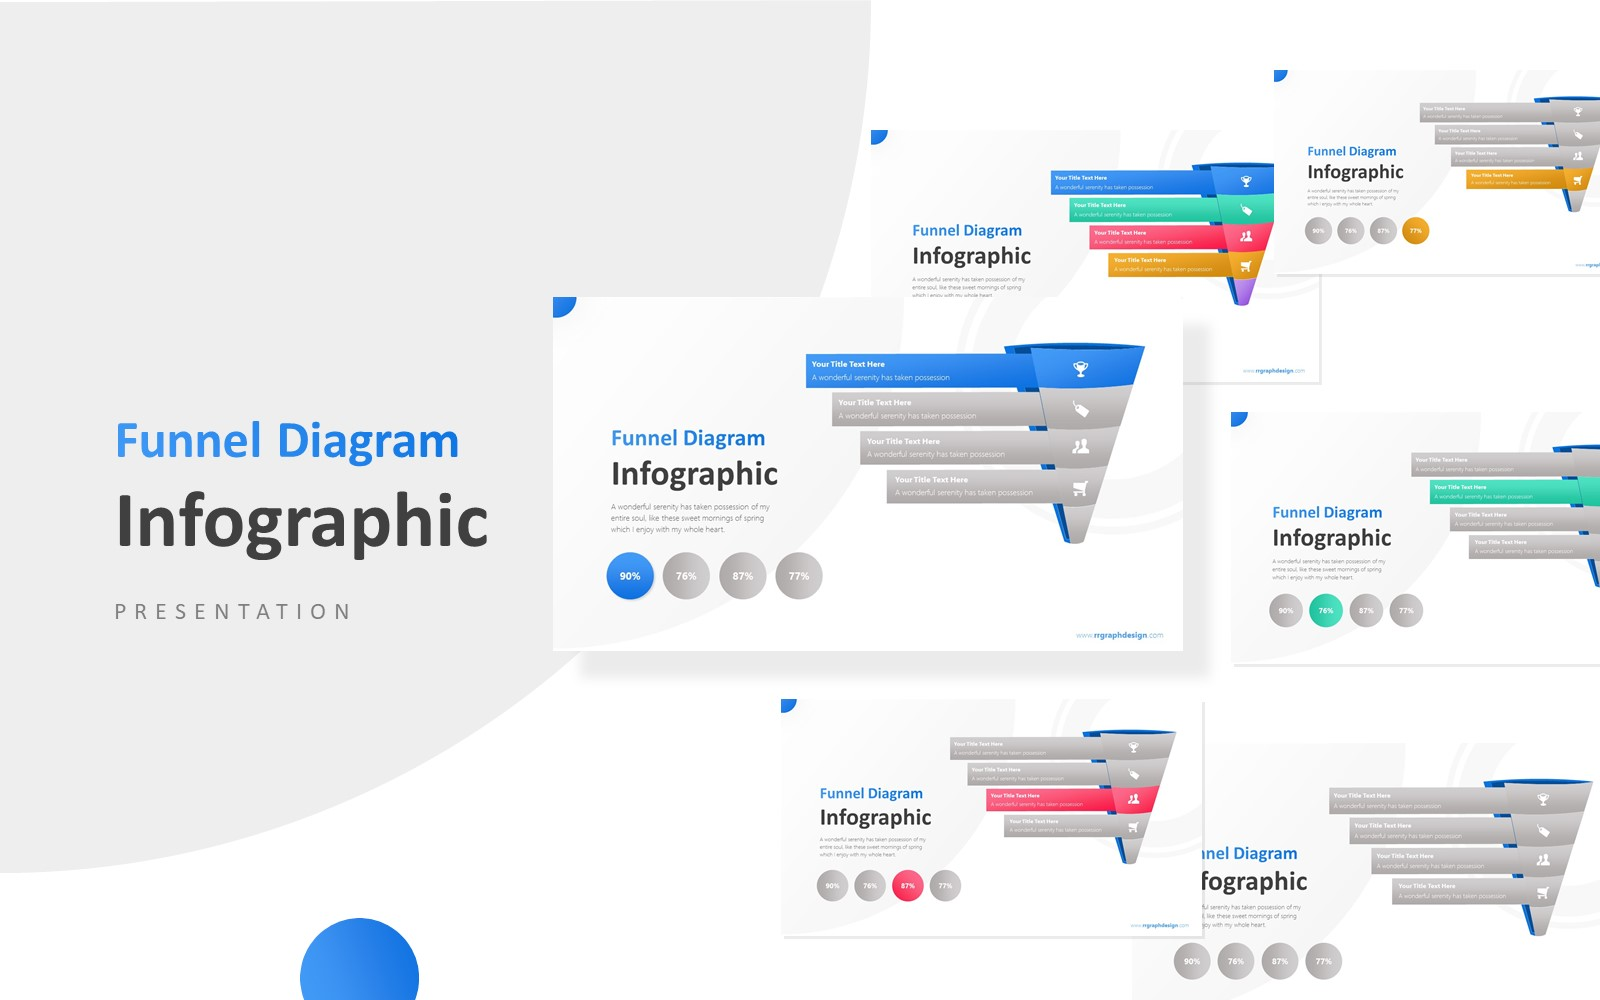 3D Funnel Diagram with Icons Infographic Presentation PowerPoint Template